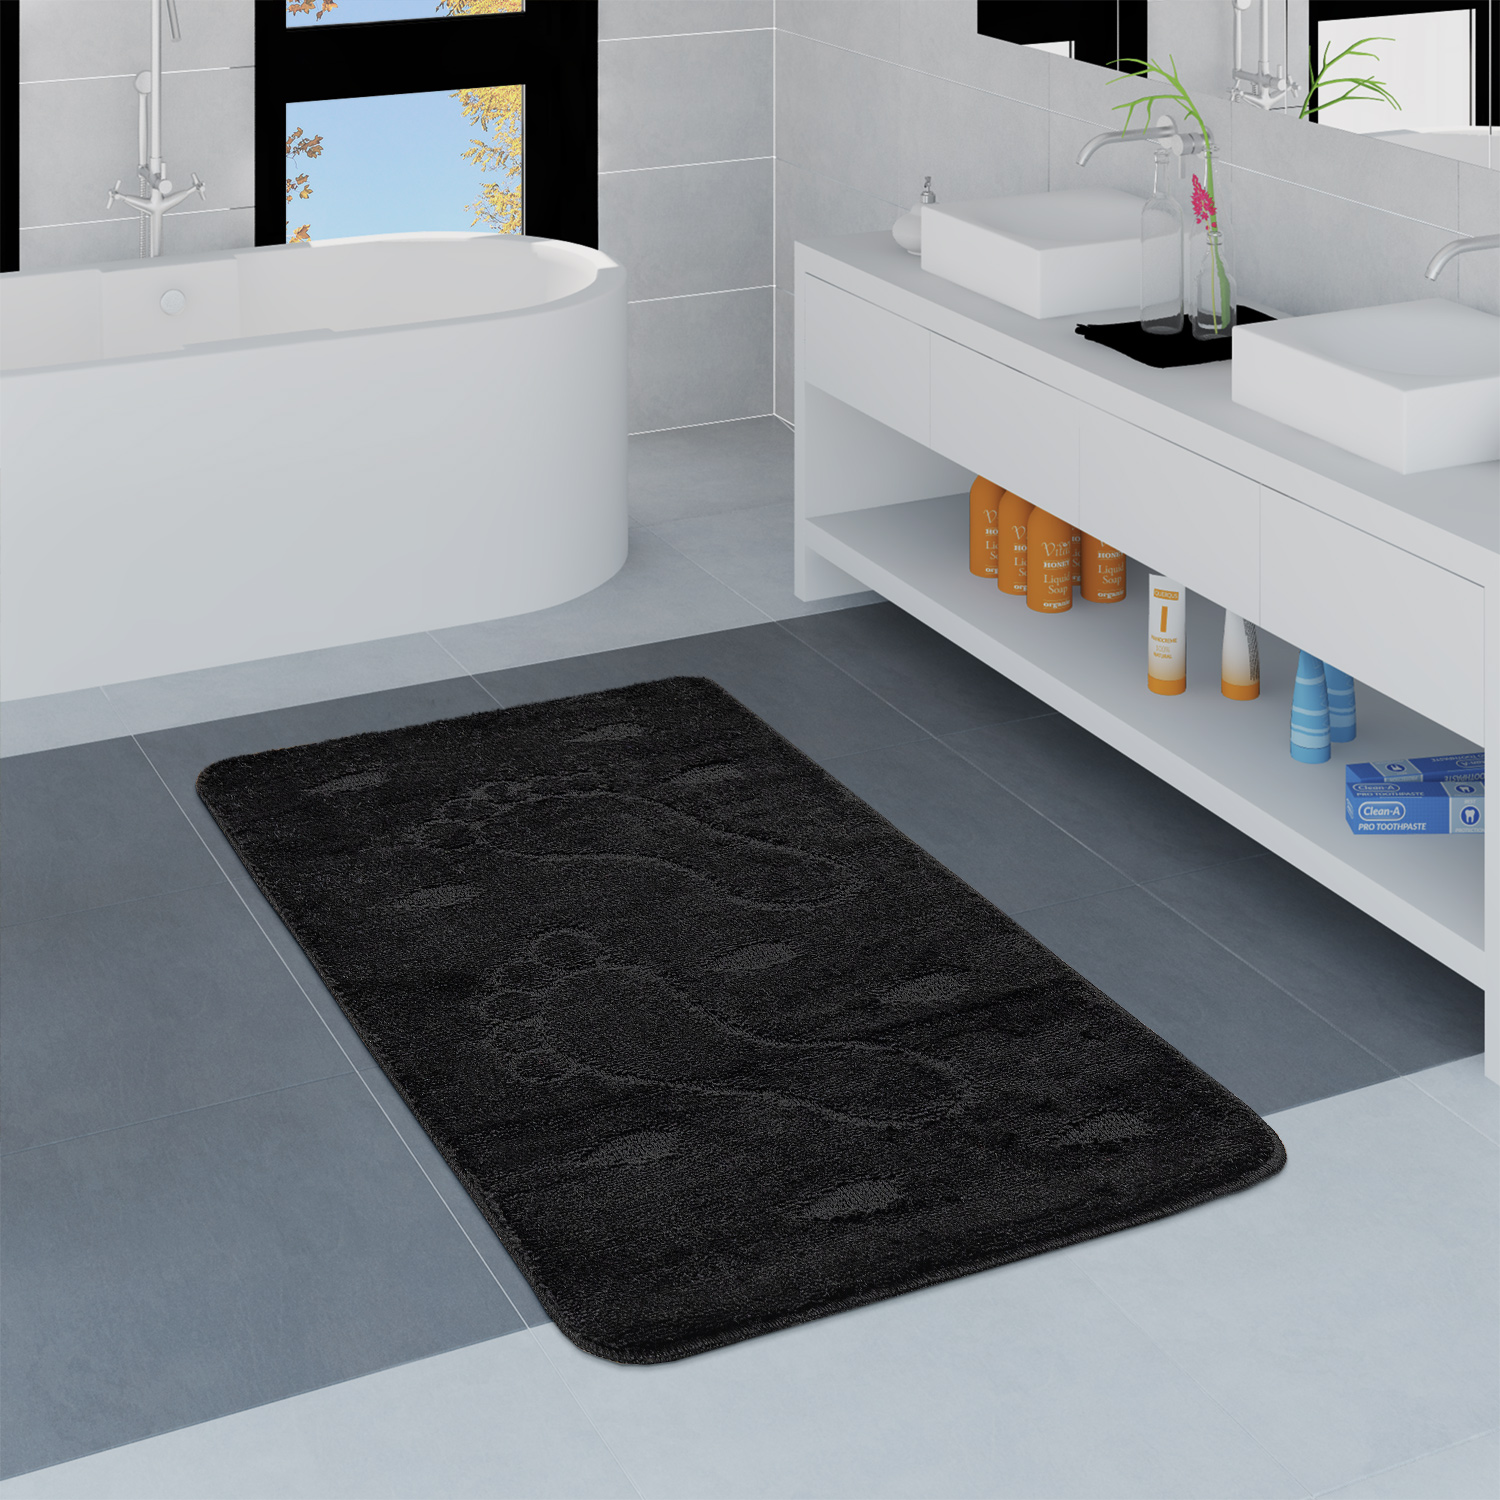 Modern Bathroom Rug Non-Slip Bathmat Footprint One Colour In Black